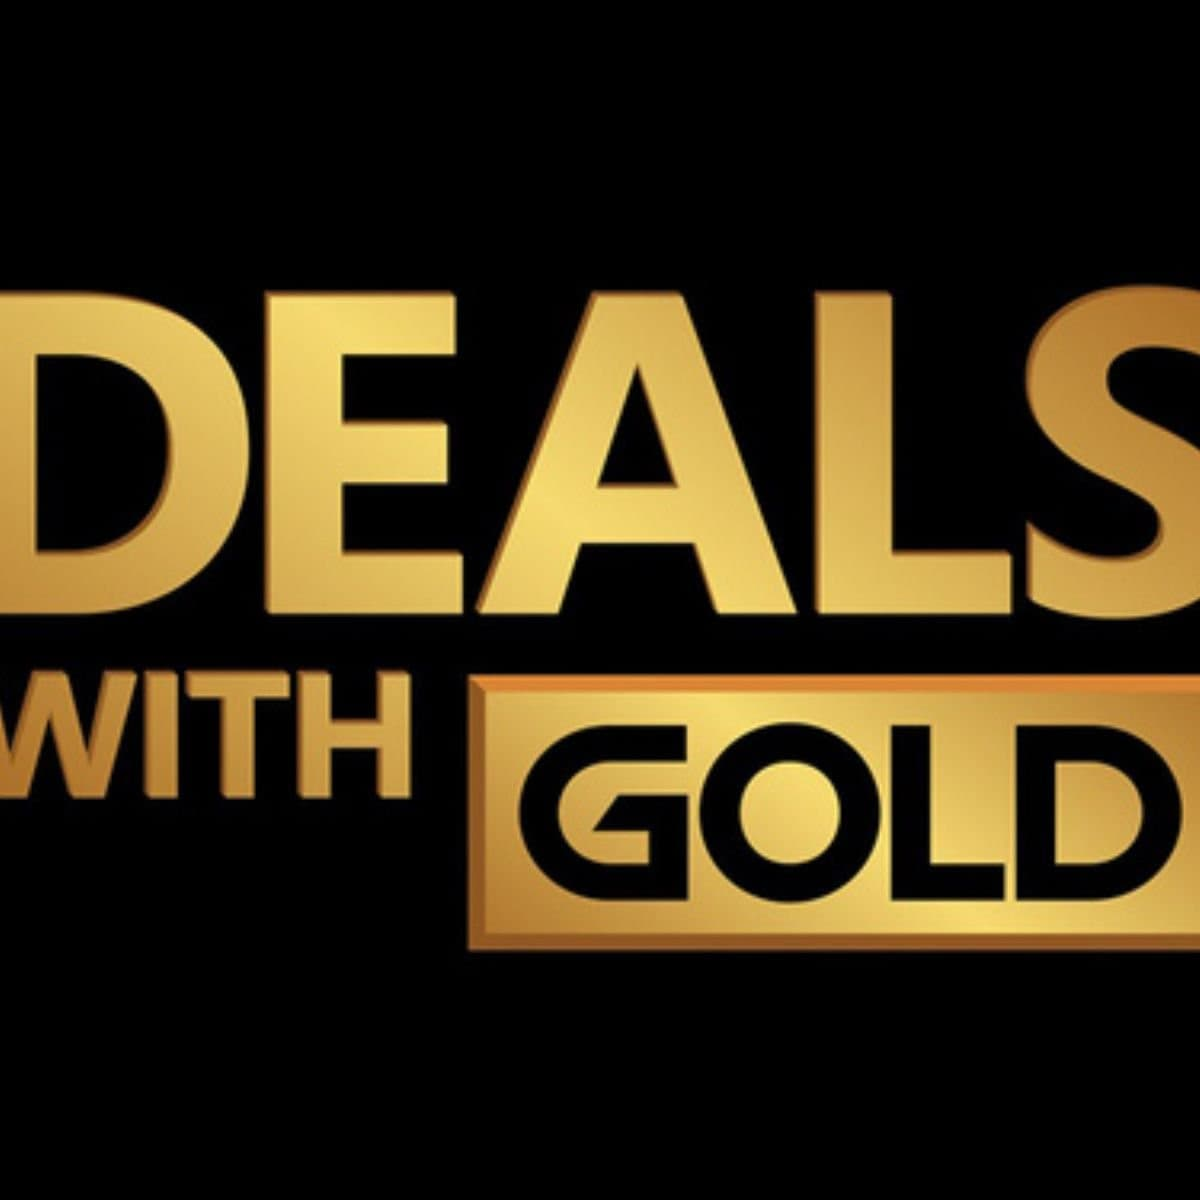 Deals with Gold semaine 52